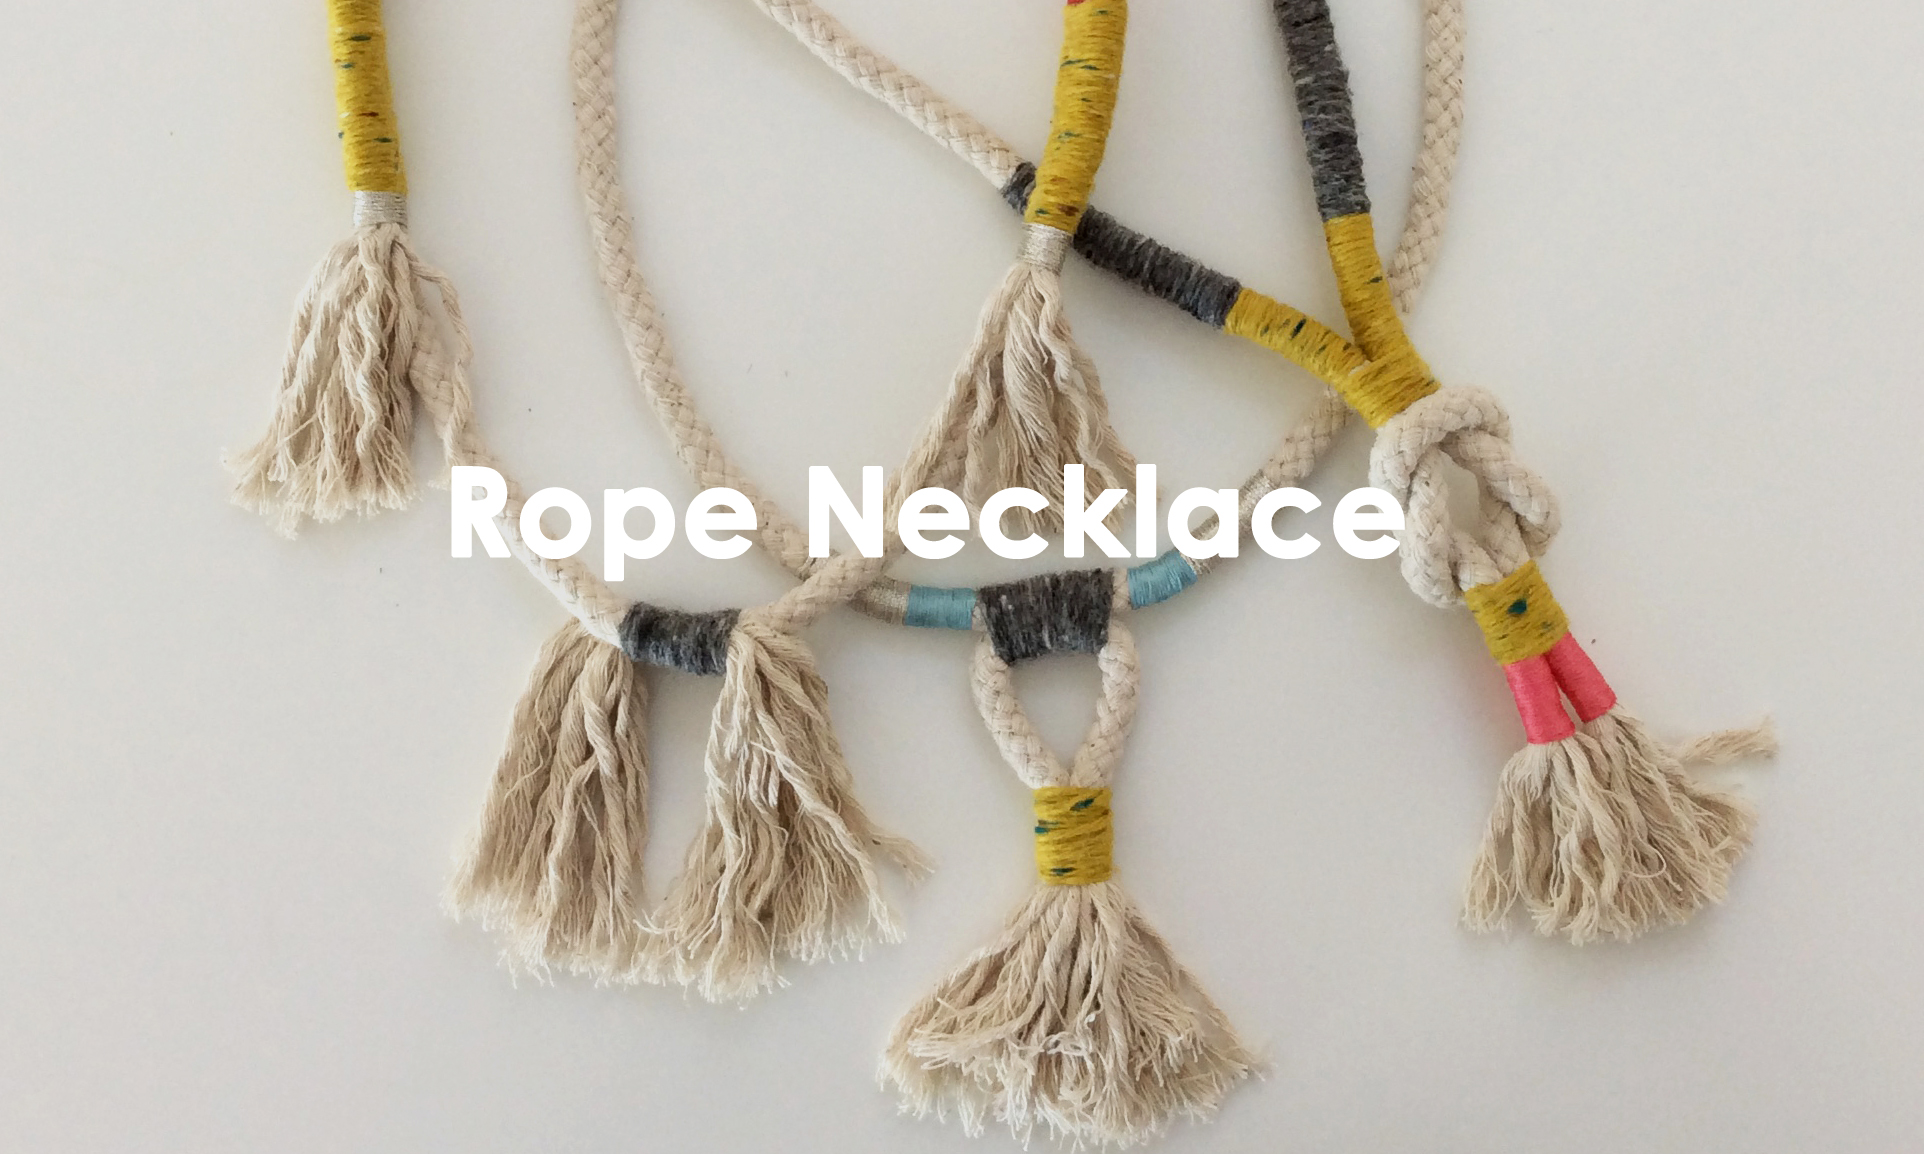 DIY Rope Necklace Workshop, The Corner Store Gallery